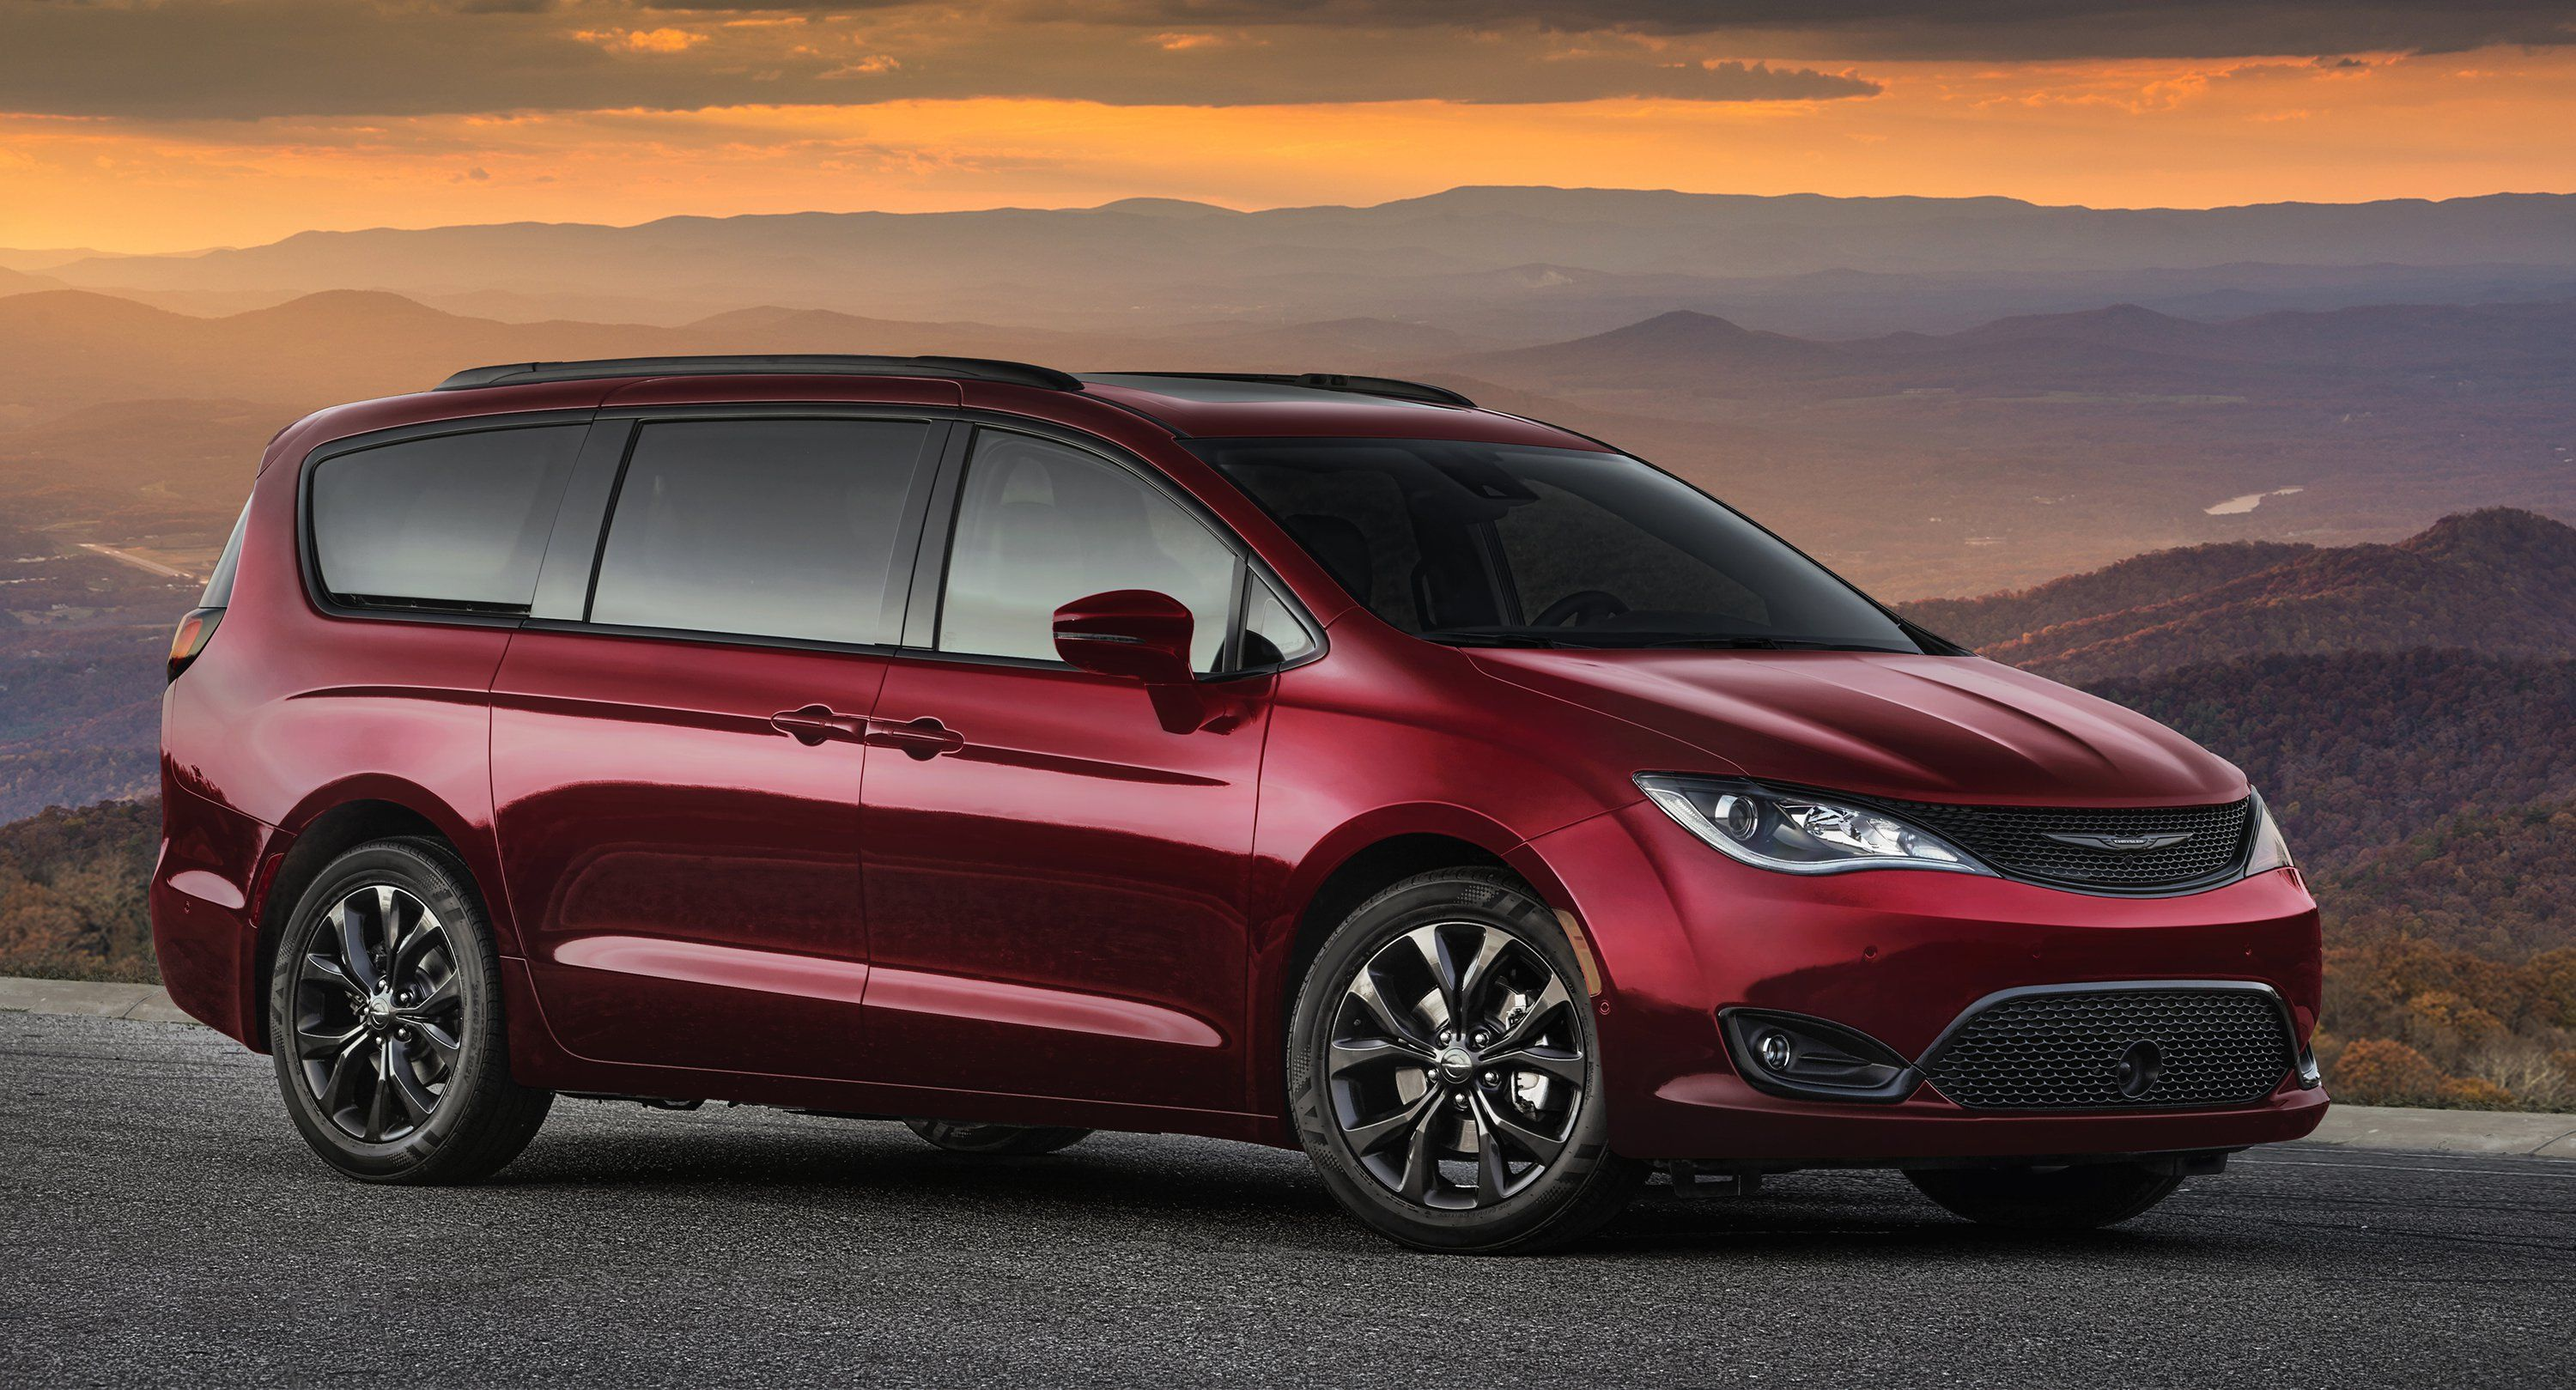 2019 Dodge Grand Caravan And Chrysler Pacifica 35th Anniversary